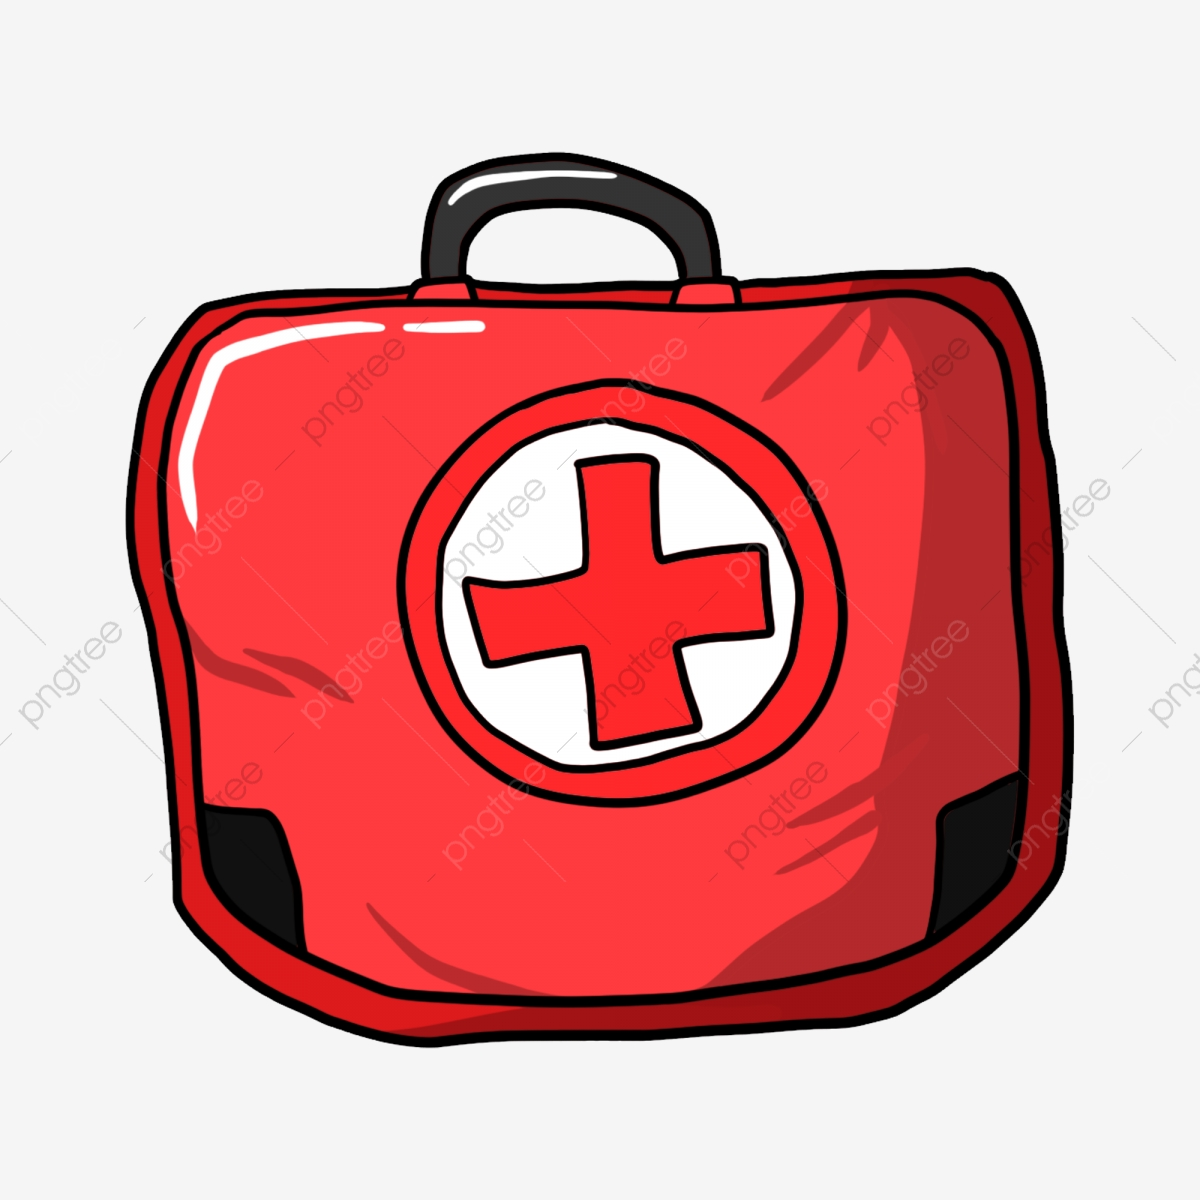 Free Medicine Kit Cliparts, Download Free Clip Art, Free Clip Art on Clipart  Library